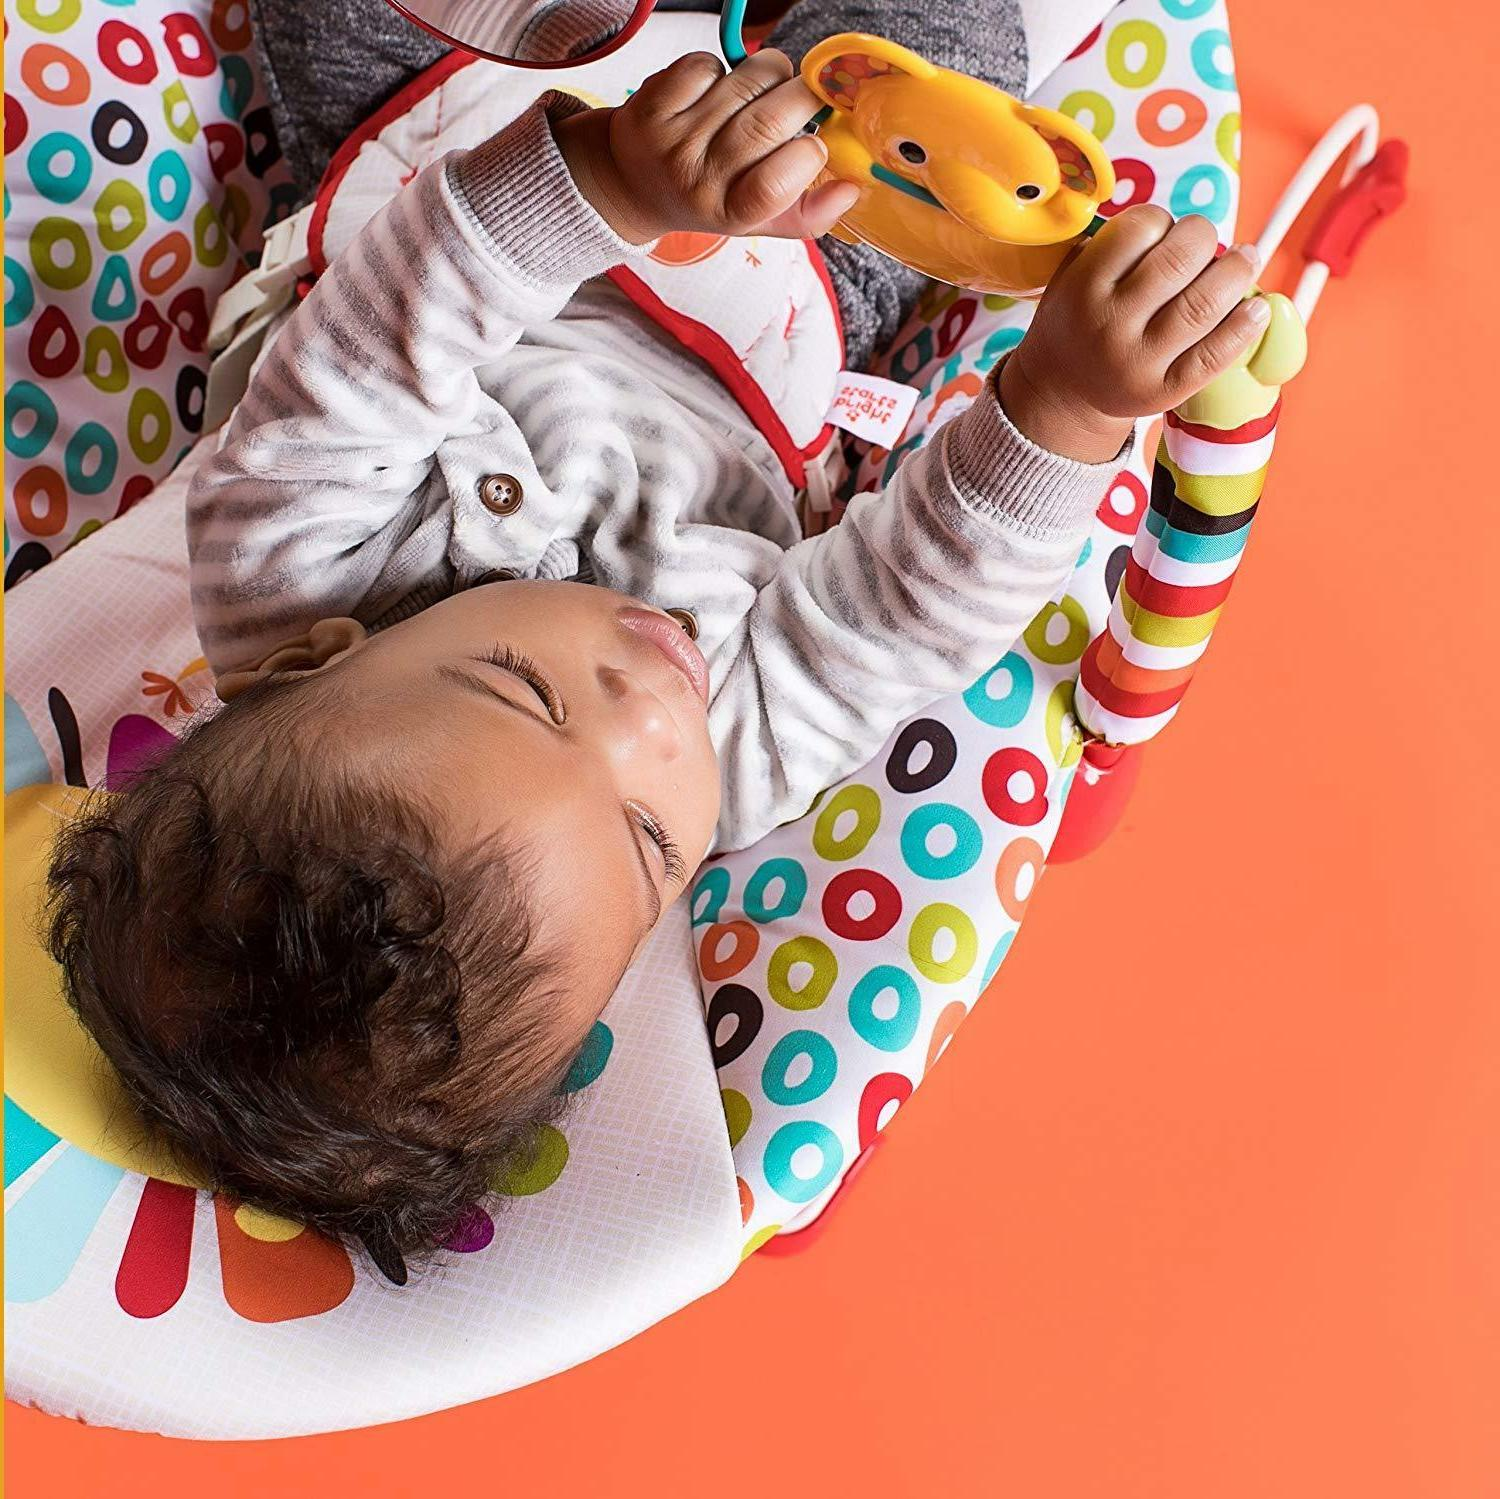 Bright Bouncer Baby Seat up to 20 Pounds, Ship